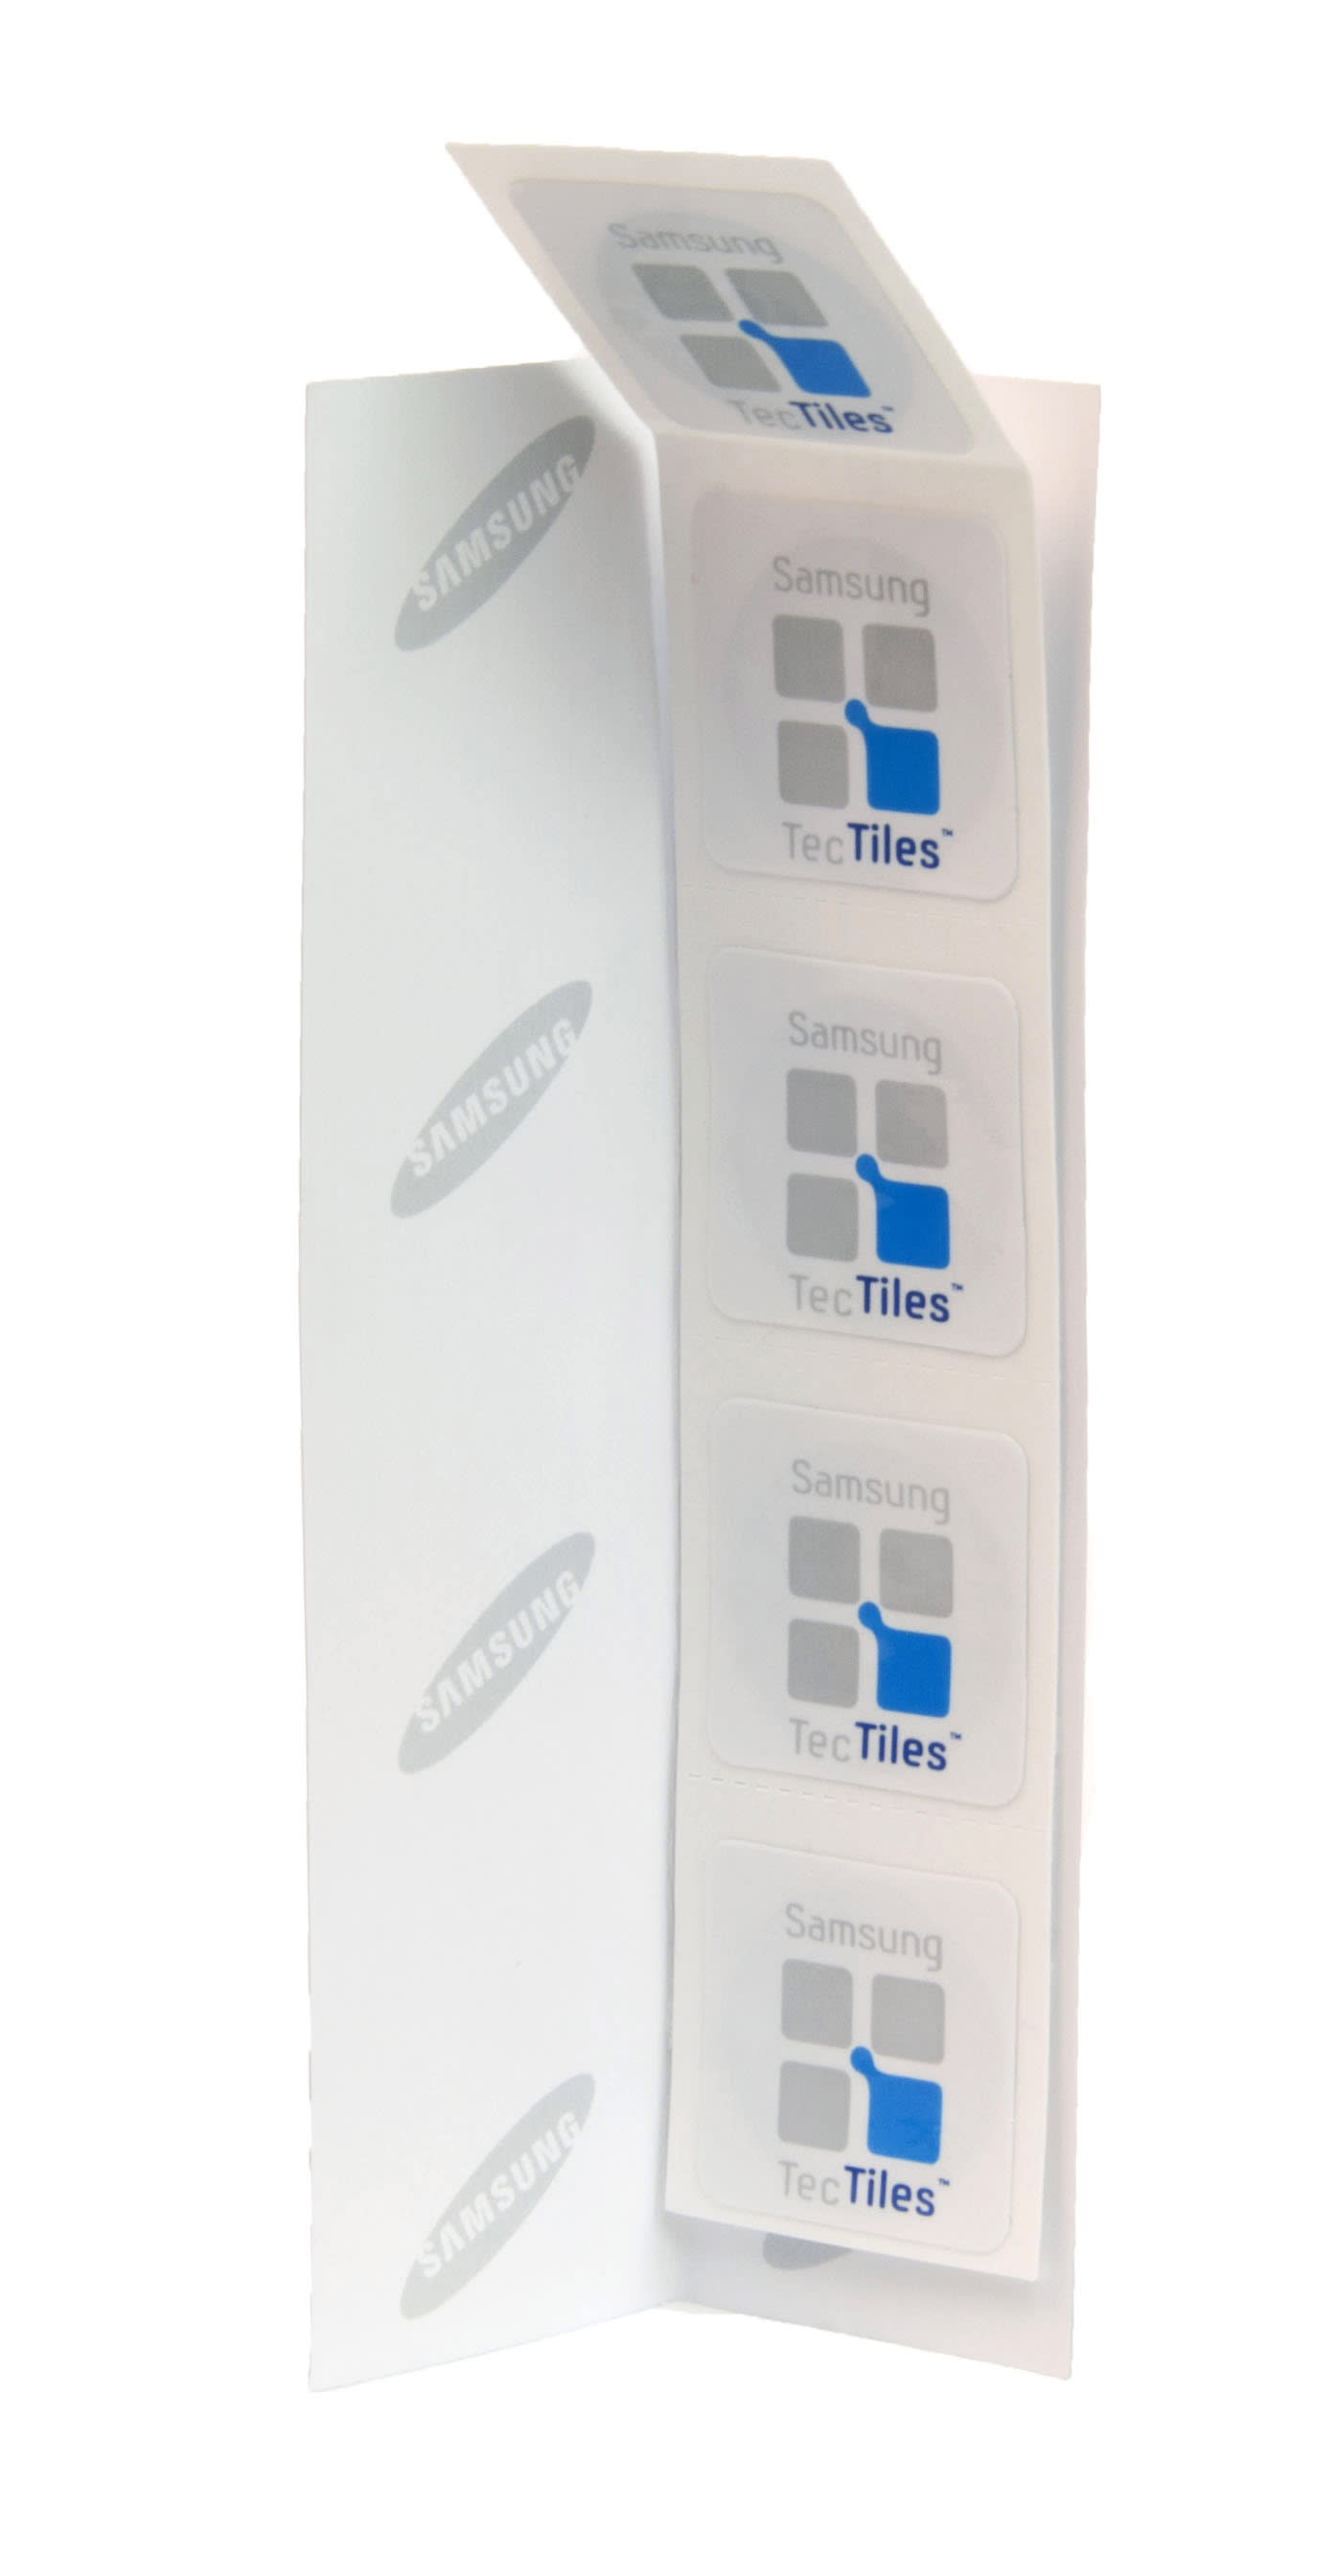 This undated image provided by Samsung on Friday, June 15, 2012 shows TecTiles stickers for use with certain near field communications-enabled mobile phones. The big push behind the technology comes from companies that see the phone as the wallet of the future. When touched to payment terminals, NFC-equipped phones can act as credit or debit cards. (AP Photo/Samsung)